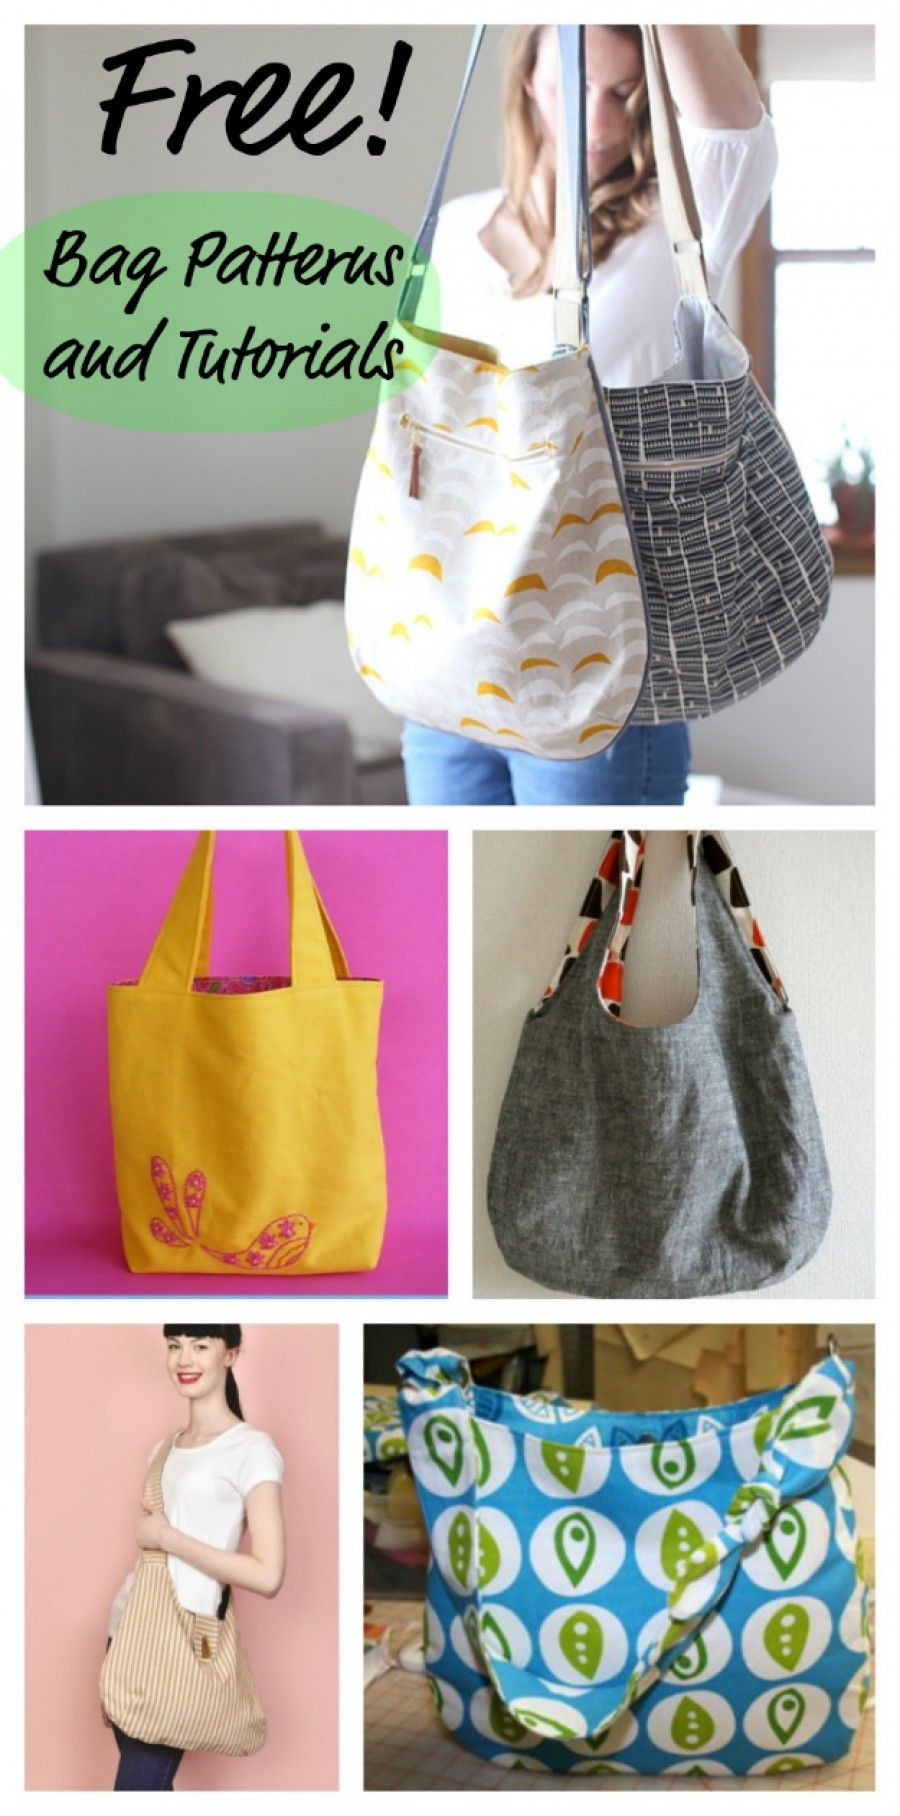 Free patterns and tutorials for sewing bags purses bags bag free patterns and tutorials for sewing bags jeuxipadfo Image collections